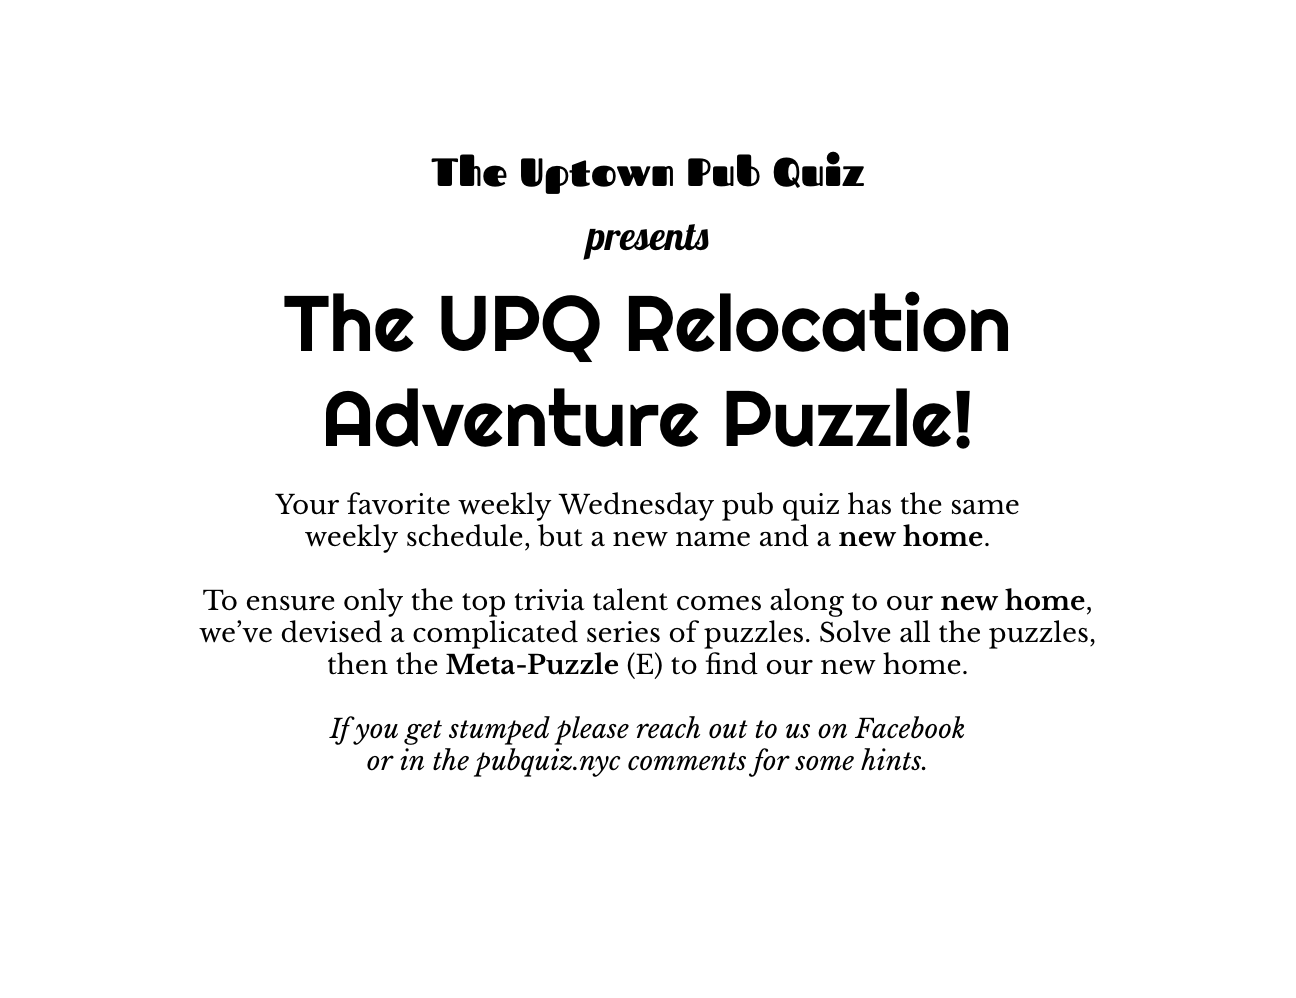 Uptown Pub Quiz Relocation Adventure Puzzle!